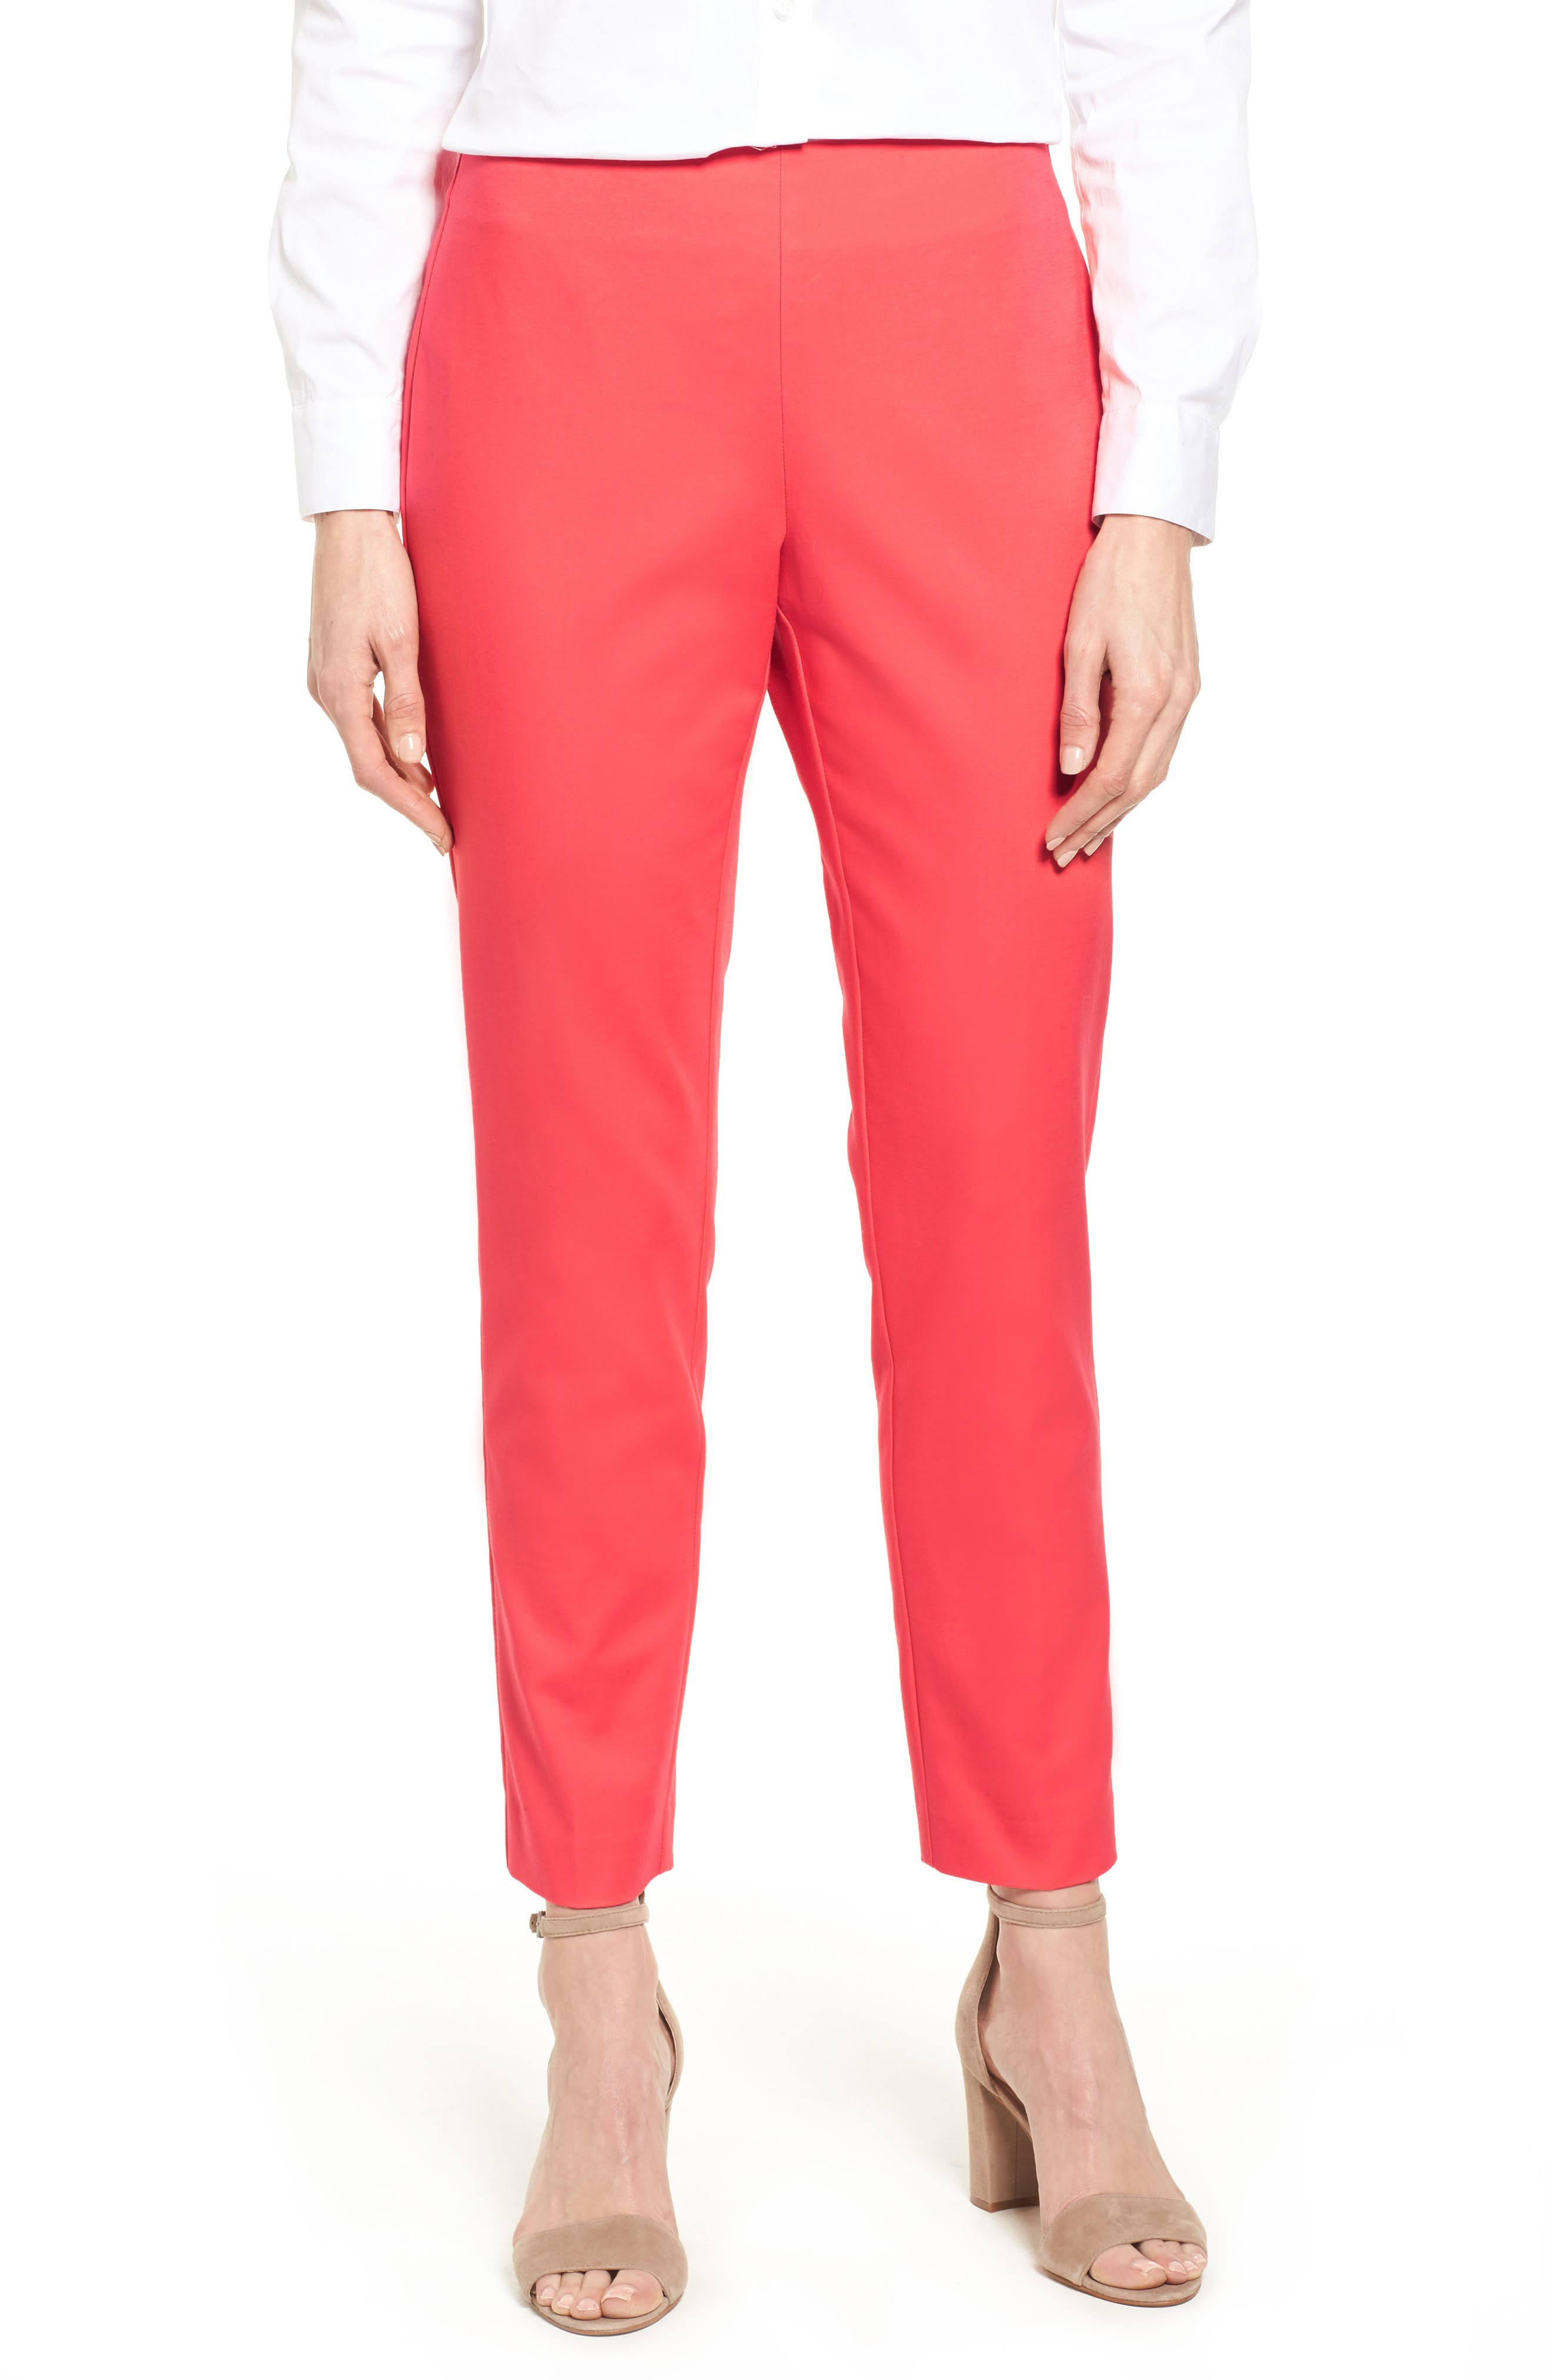 Alternate Image 1 Selected - Vince Camuto Stretch Cotton Skinny Pants